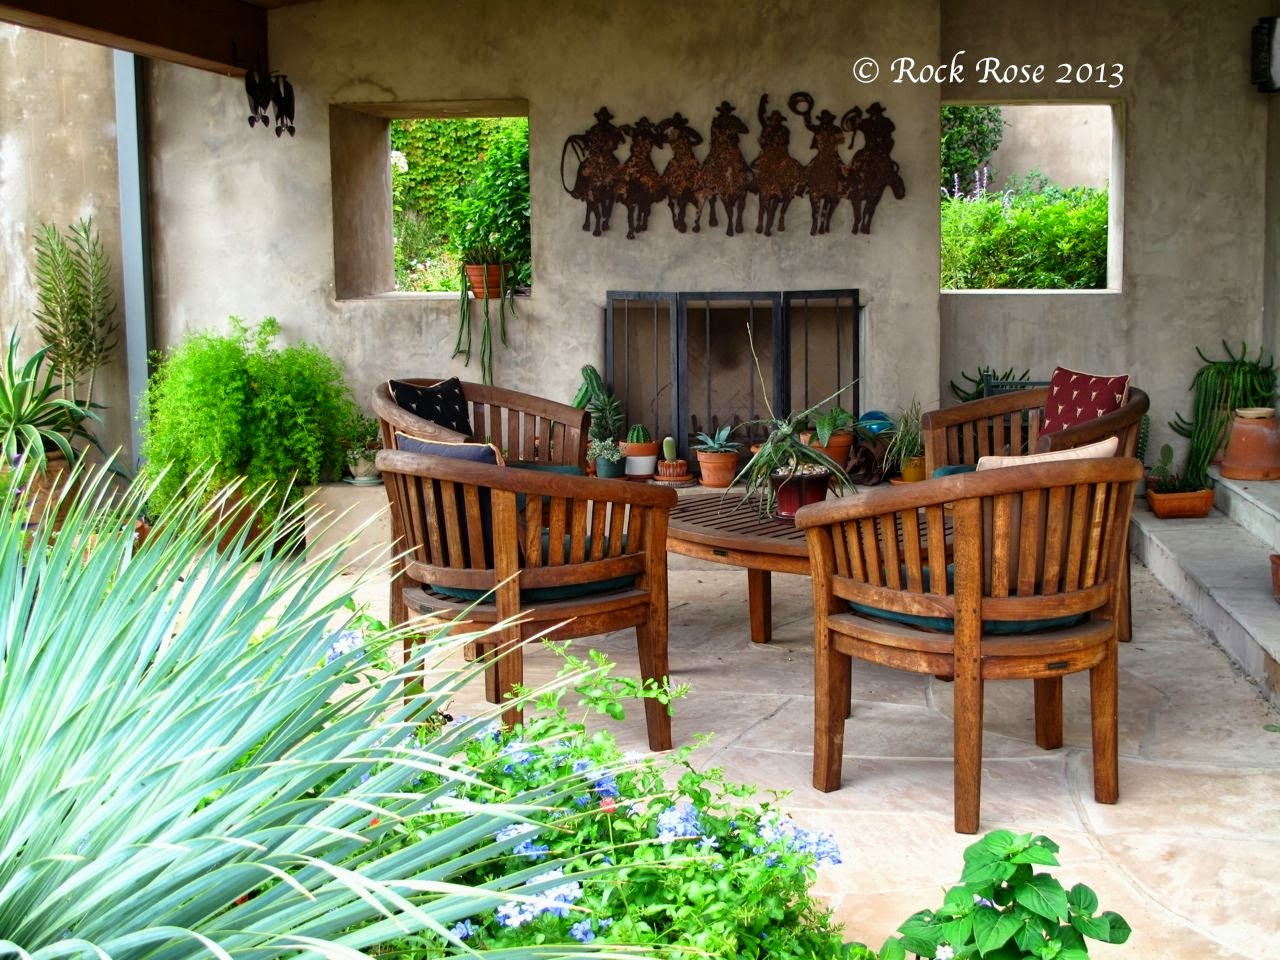 ROCK ROSE: THE RIGHT PLACES TO SIT IN THE GARDEN